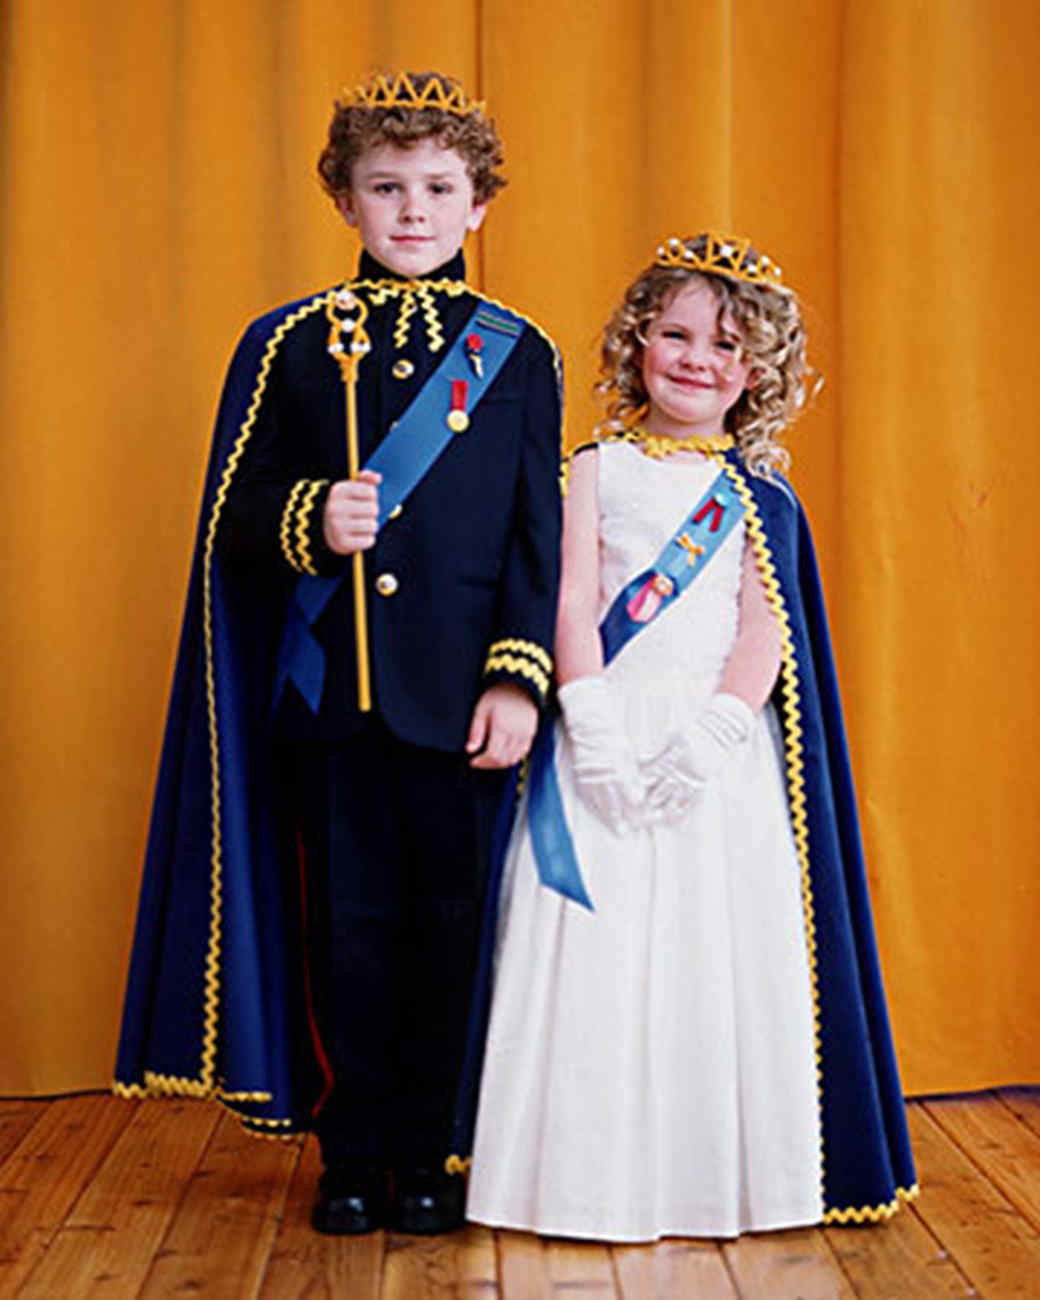 His and Her Royal Highness Costumes  sc 1 st  Martha Stewart & His and Her Royal Highness Costumes | Martha Stewart